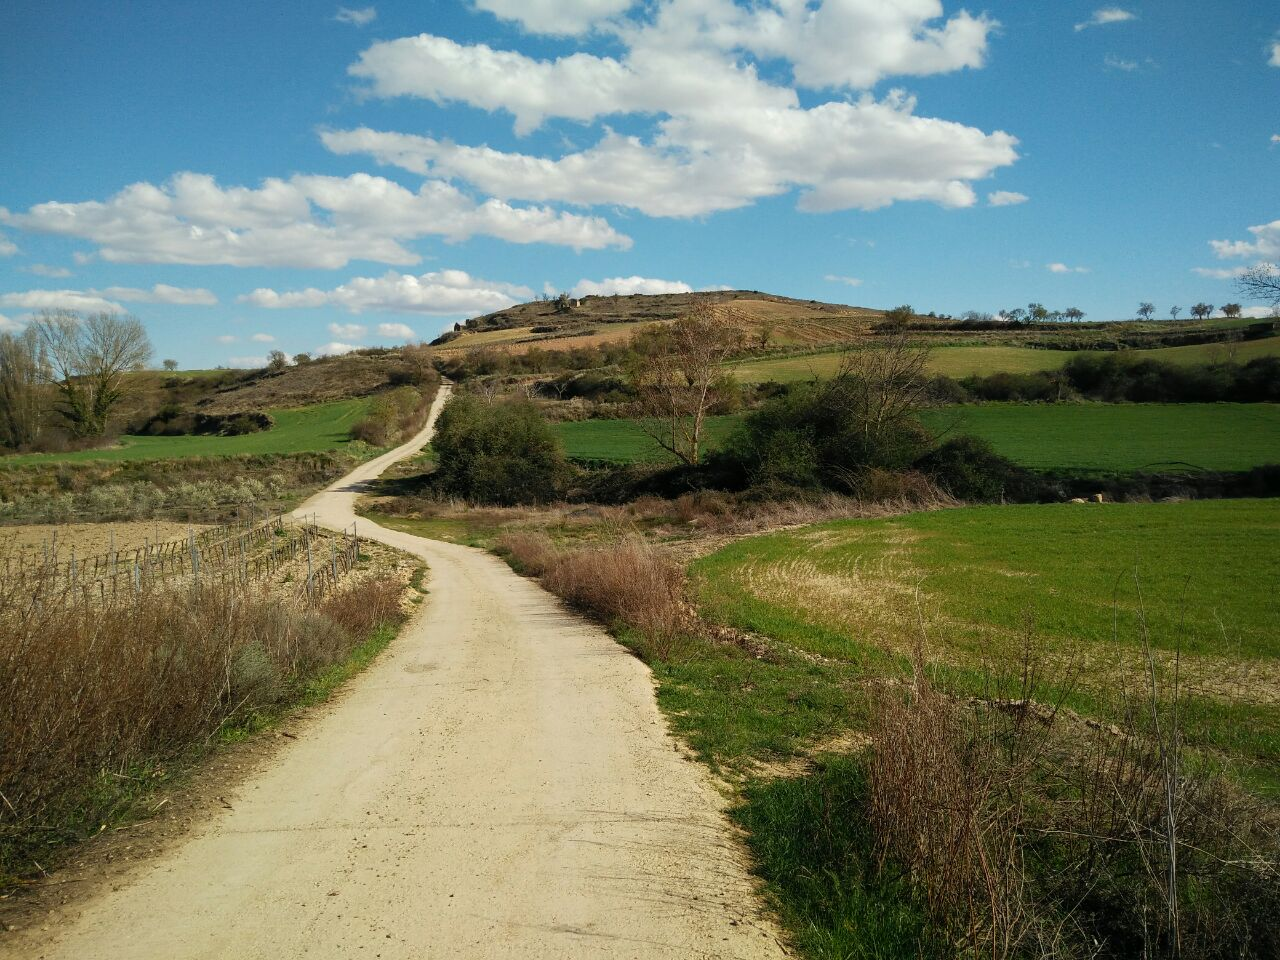 Photo of Huertas de Briones, a orillas del Ebro